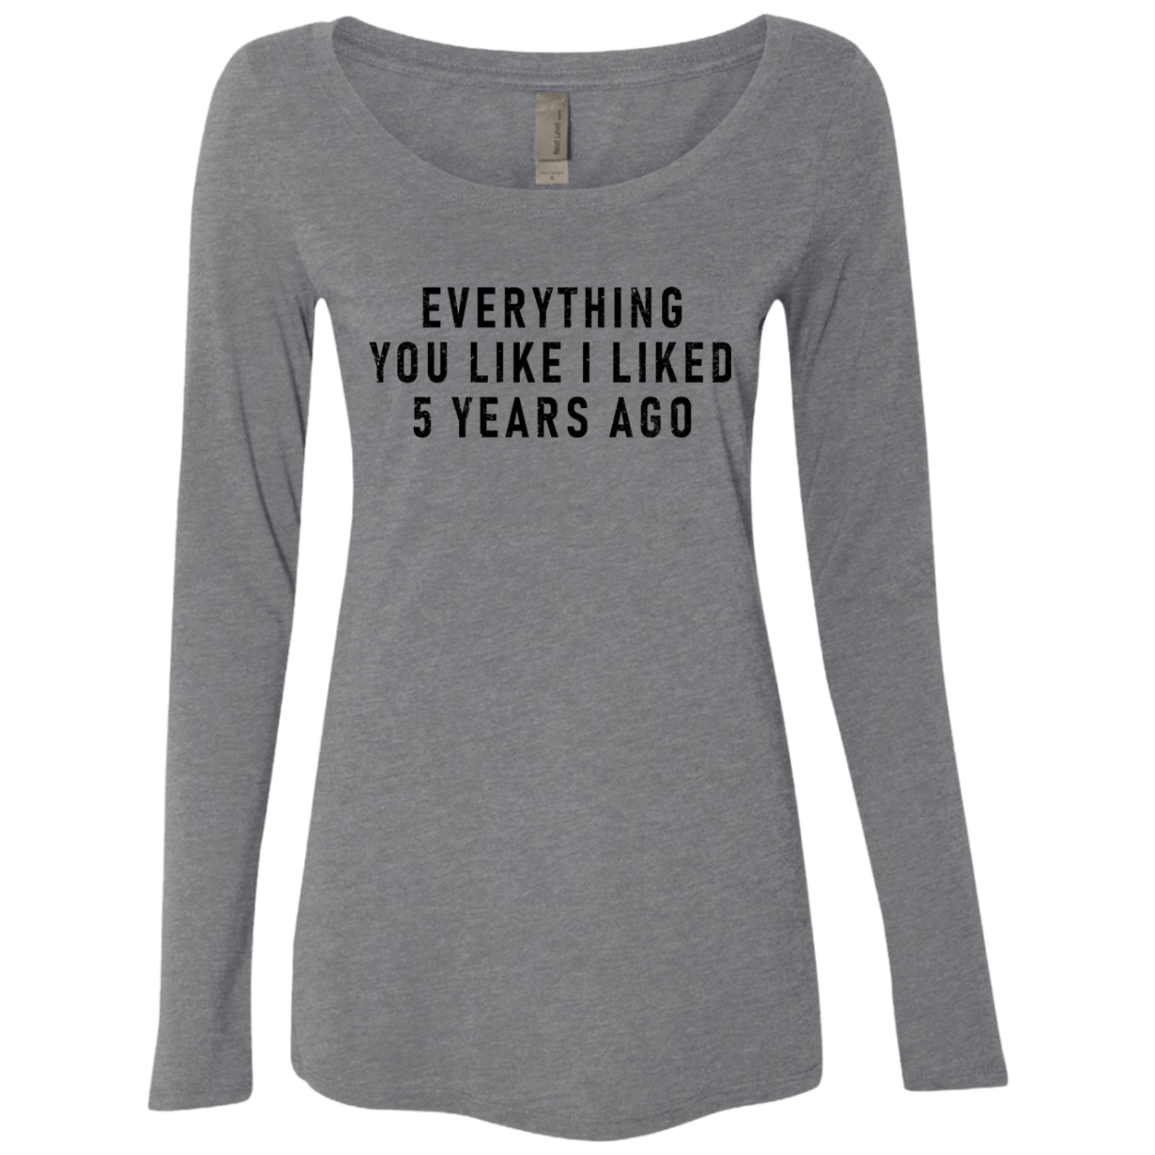 Everything You Like I Liked 5 Years Ago Women's Long Sleeve Tee